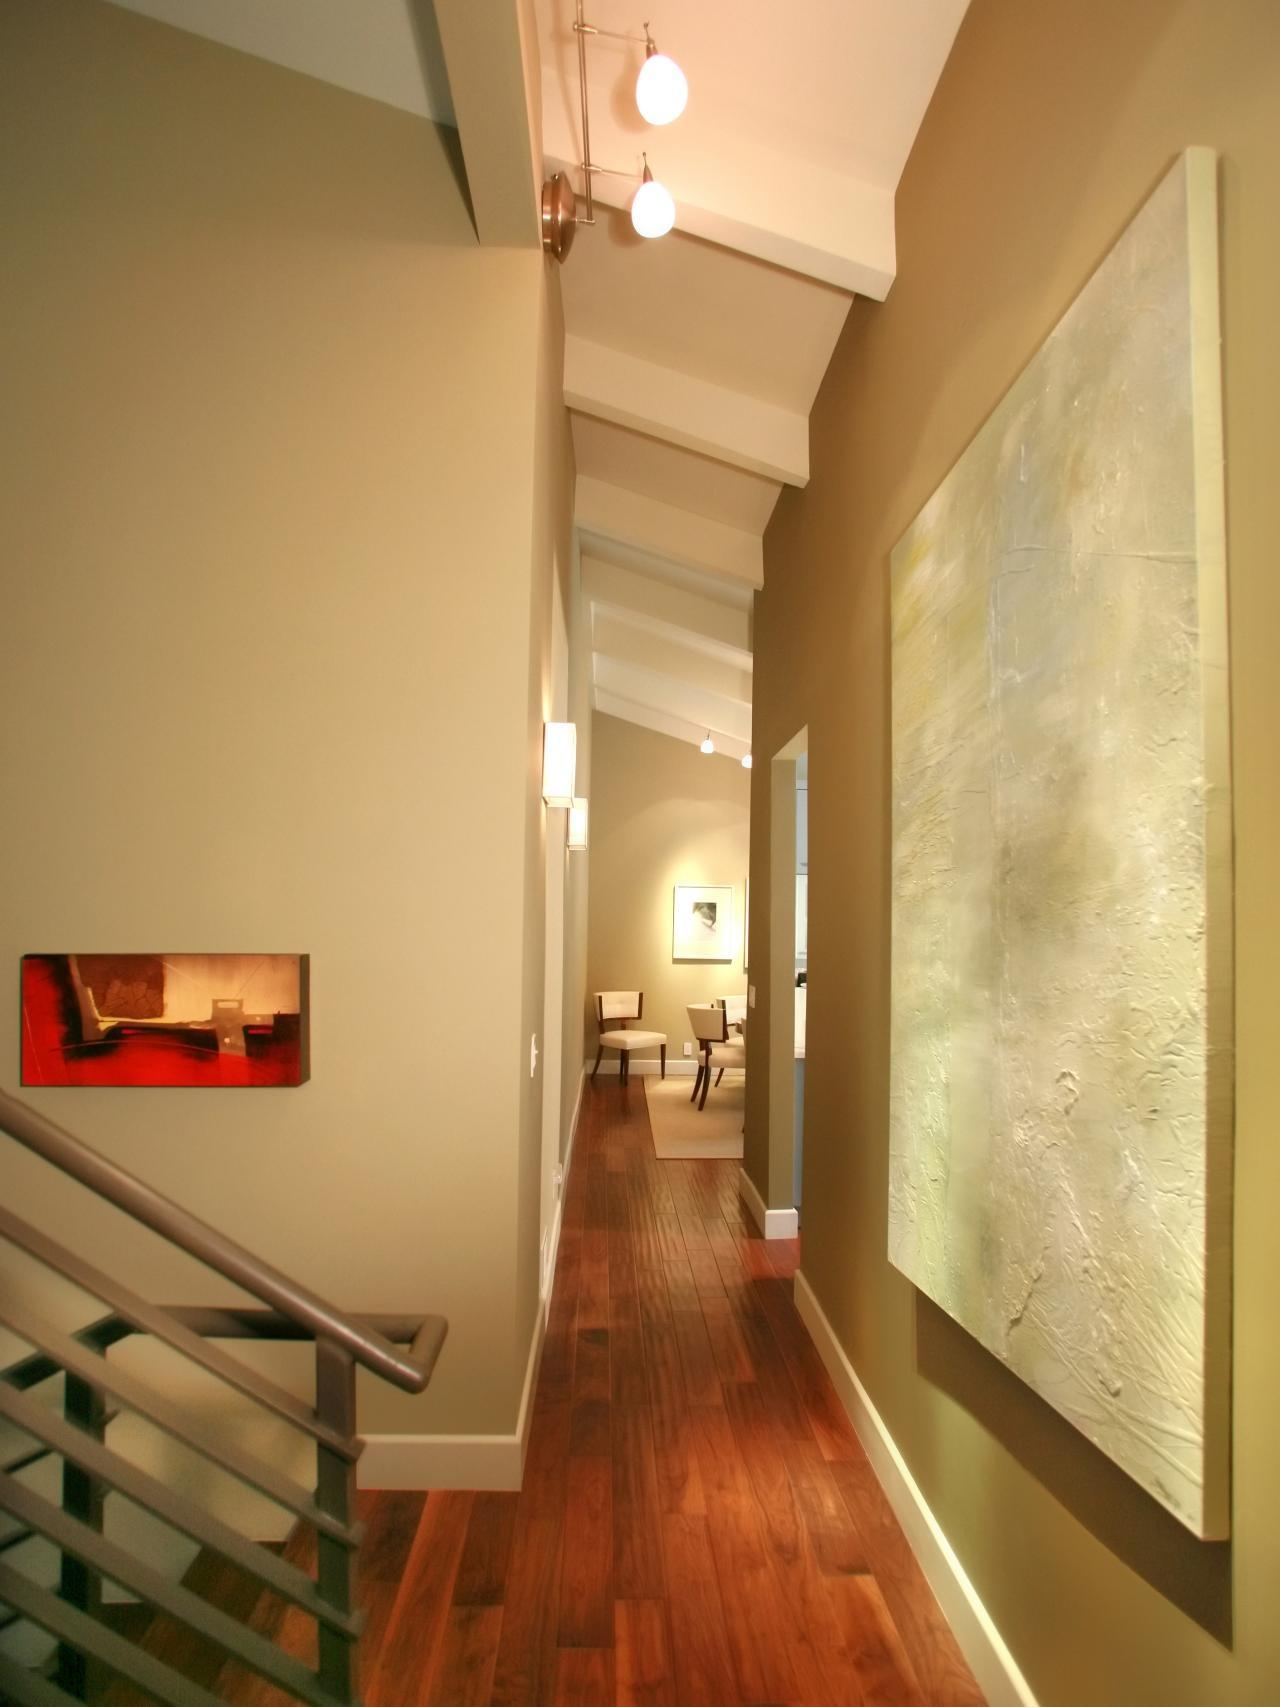 Photos Hgtv Contemporary Hallway With Vibrant Wall Art ~ Arafen In Vibrant Wall Art (View 14 of 20)